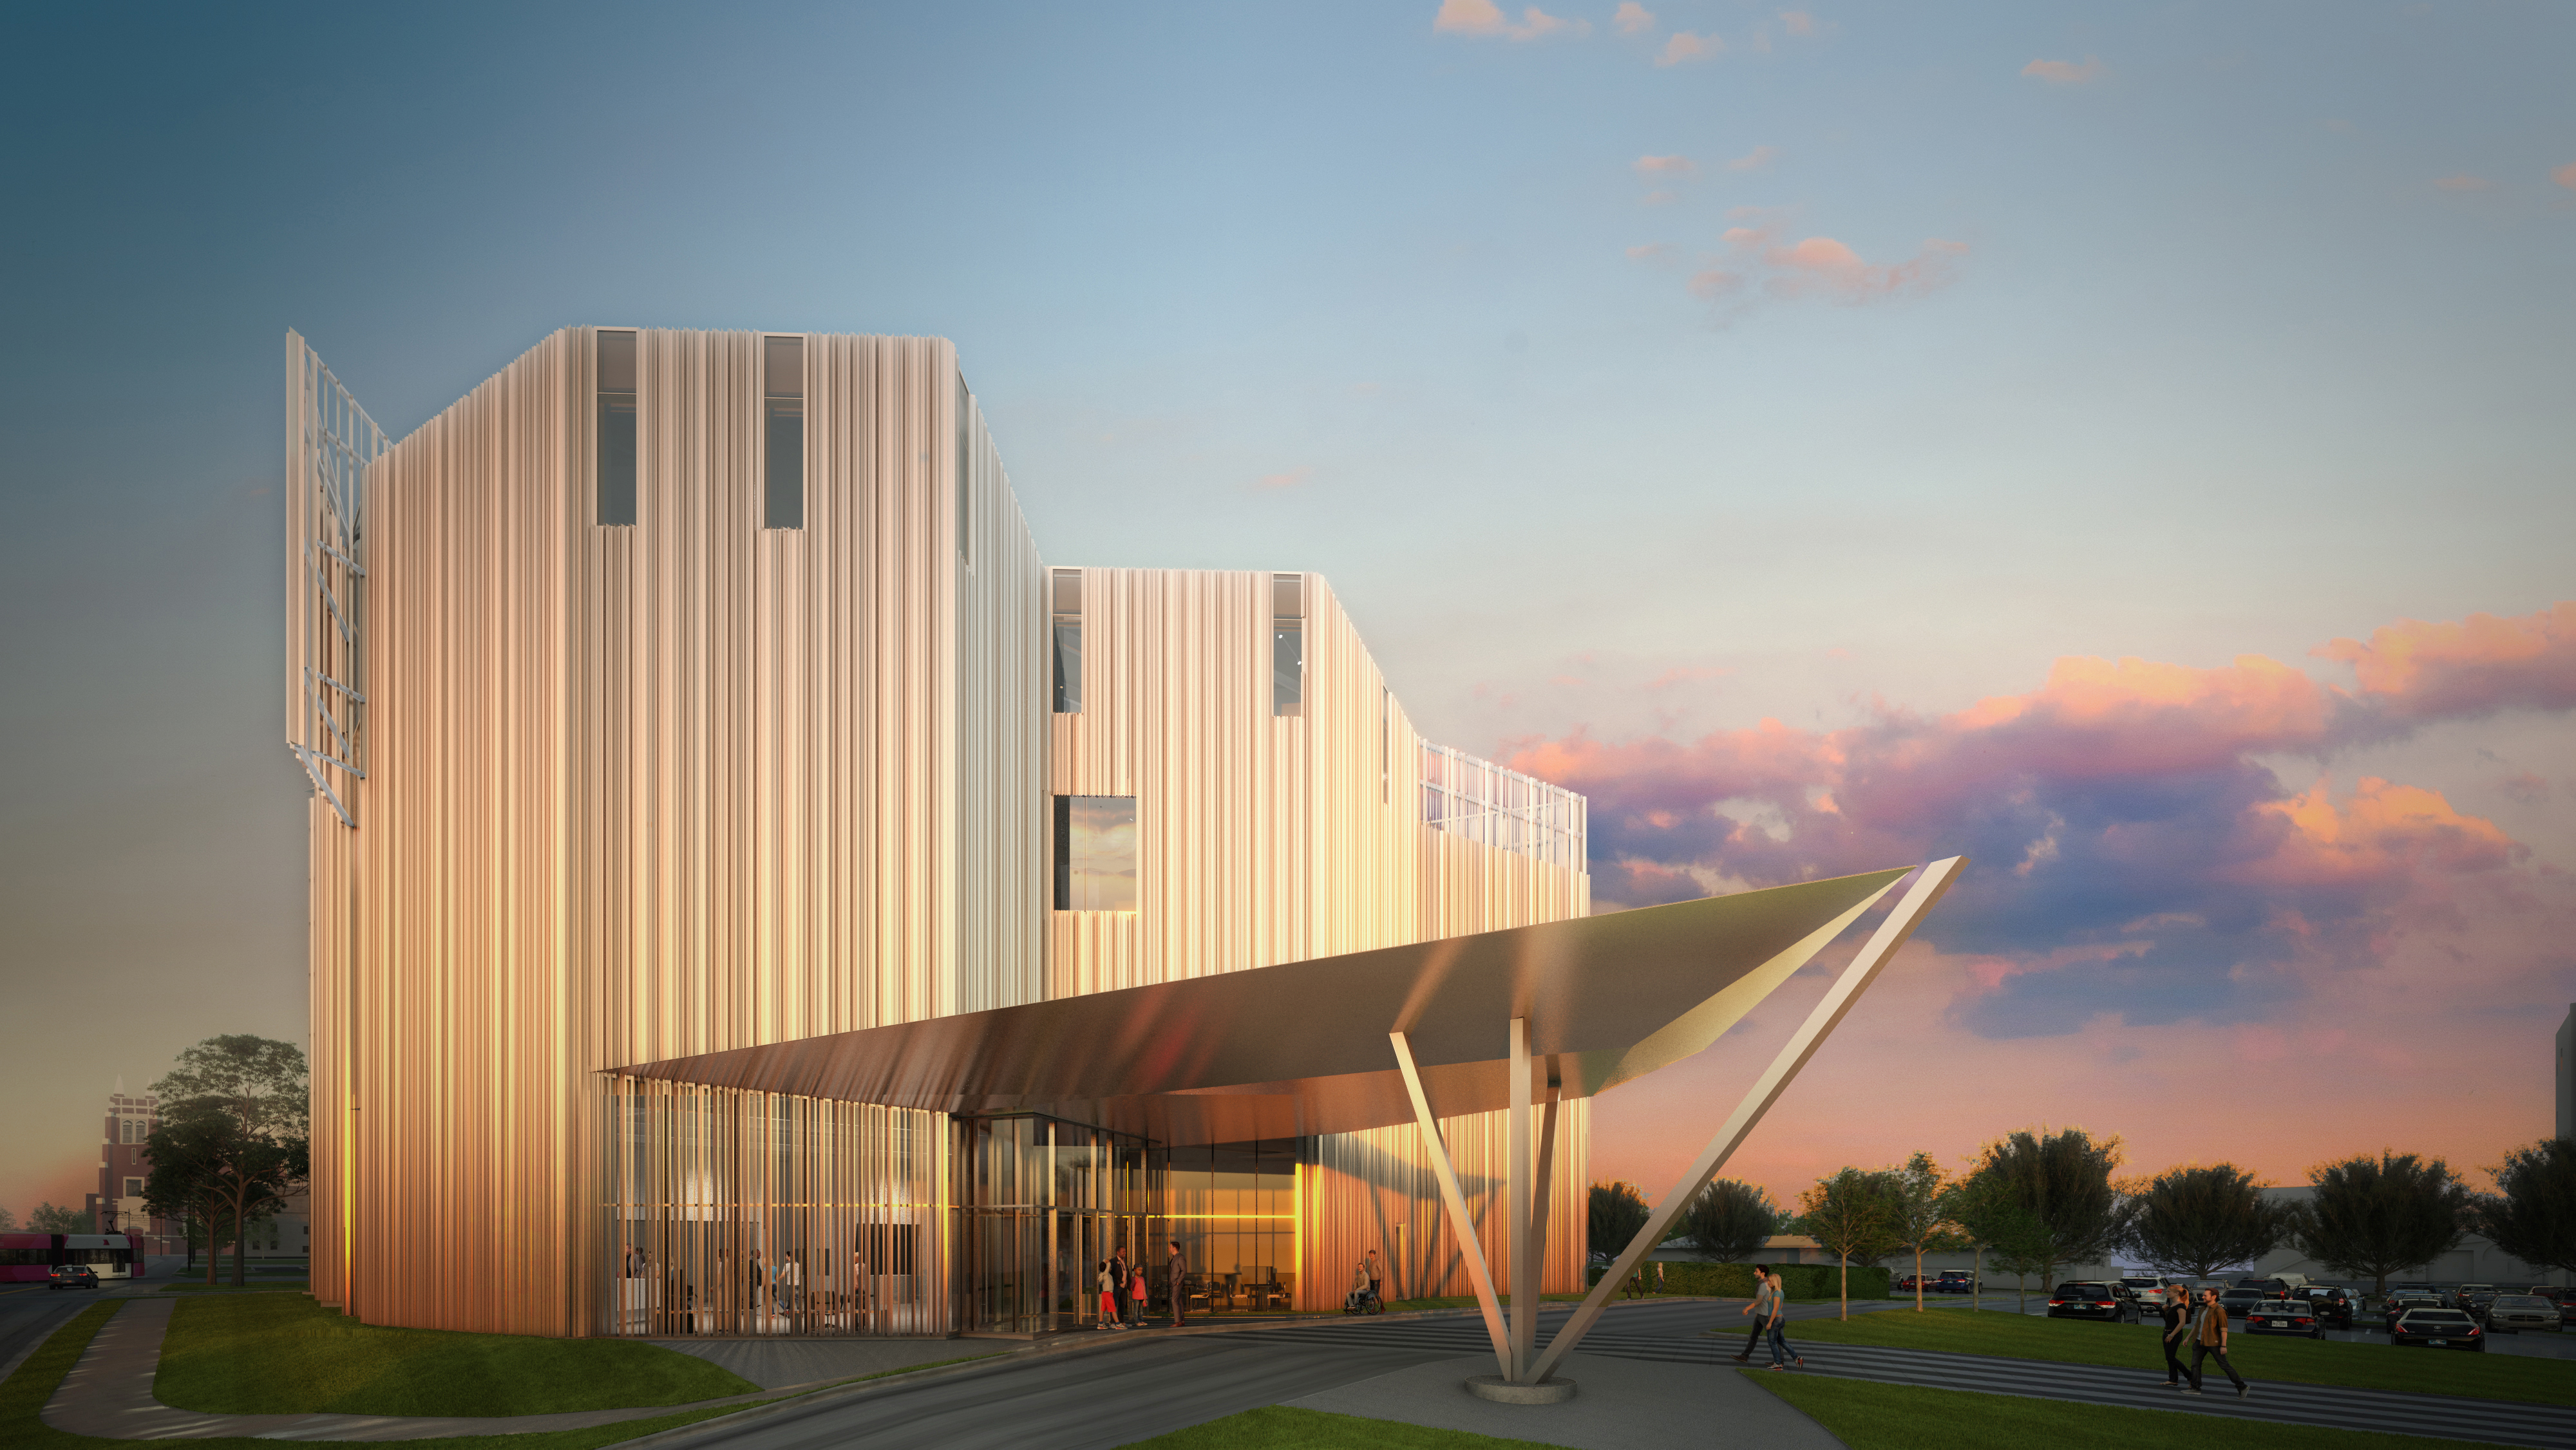 Rendered view of entrance to Oklahoma Contemporary's main building made of reflective aluminum fins against a sunset of dark blue sky fading to purple and pink clouds